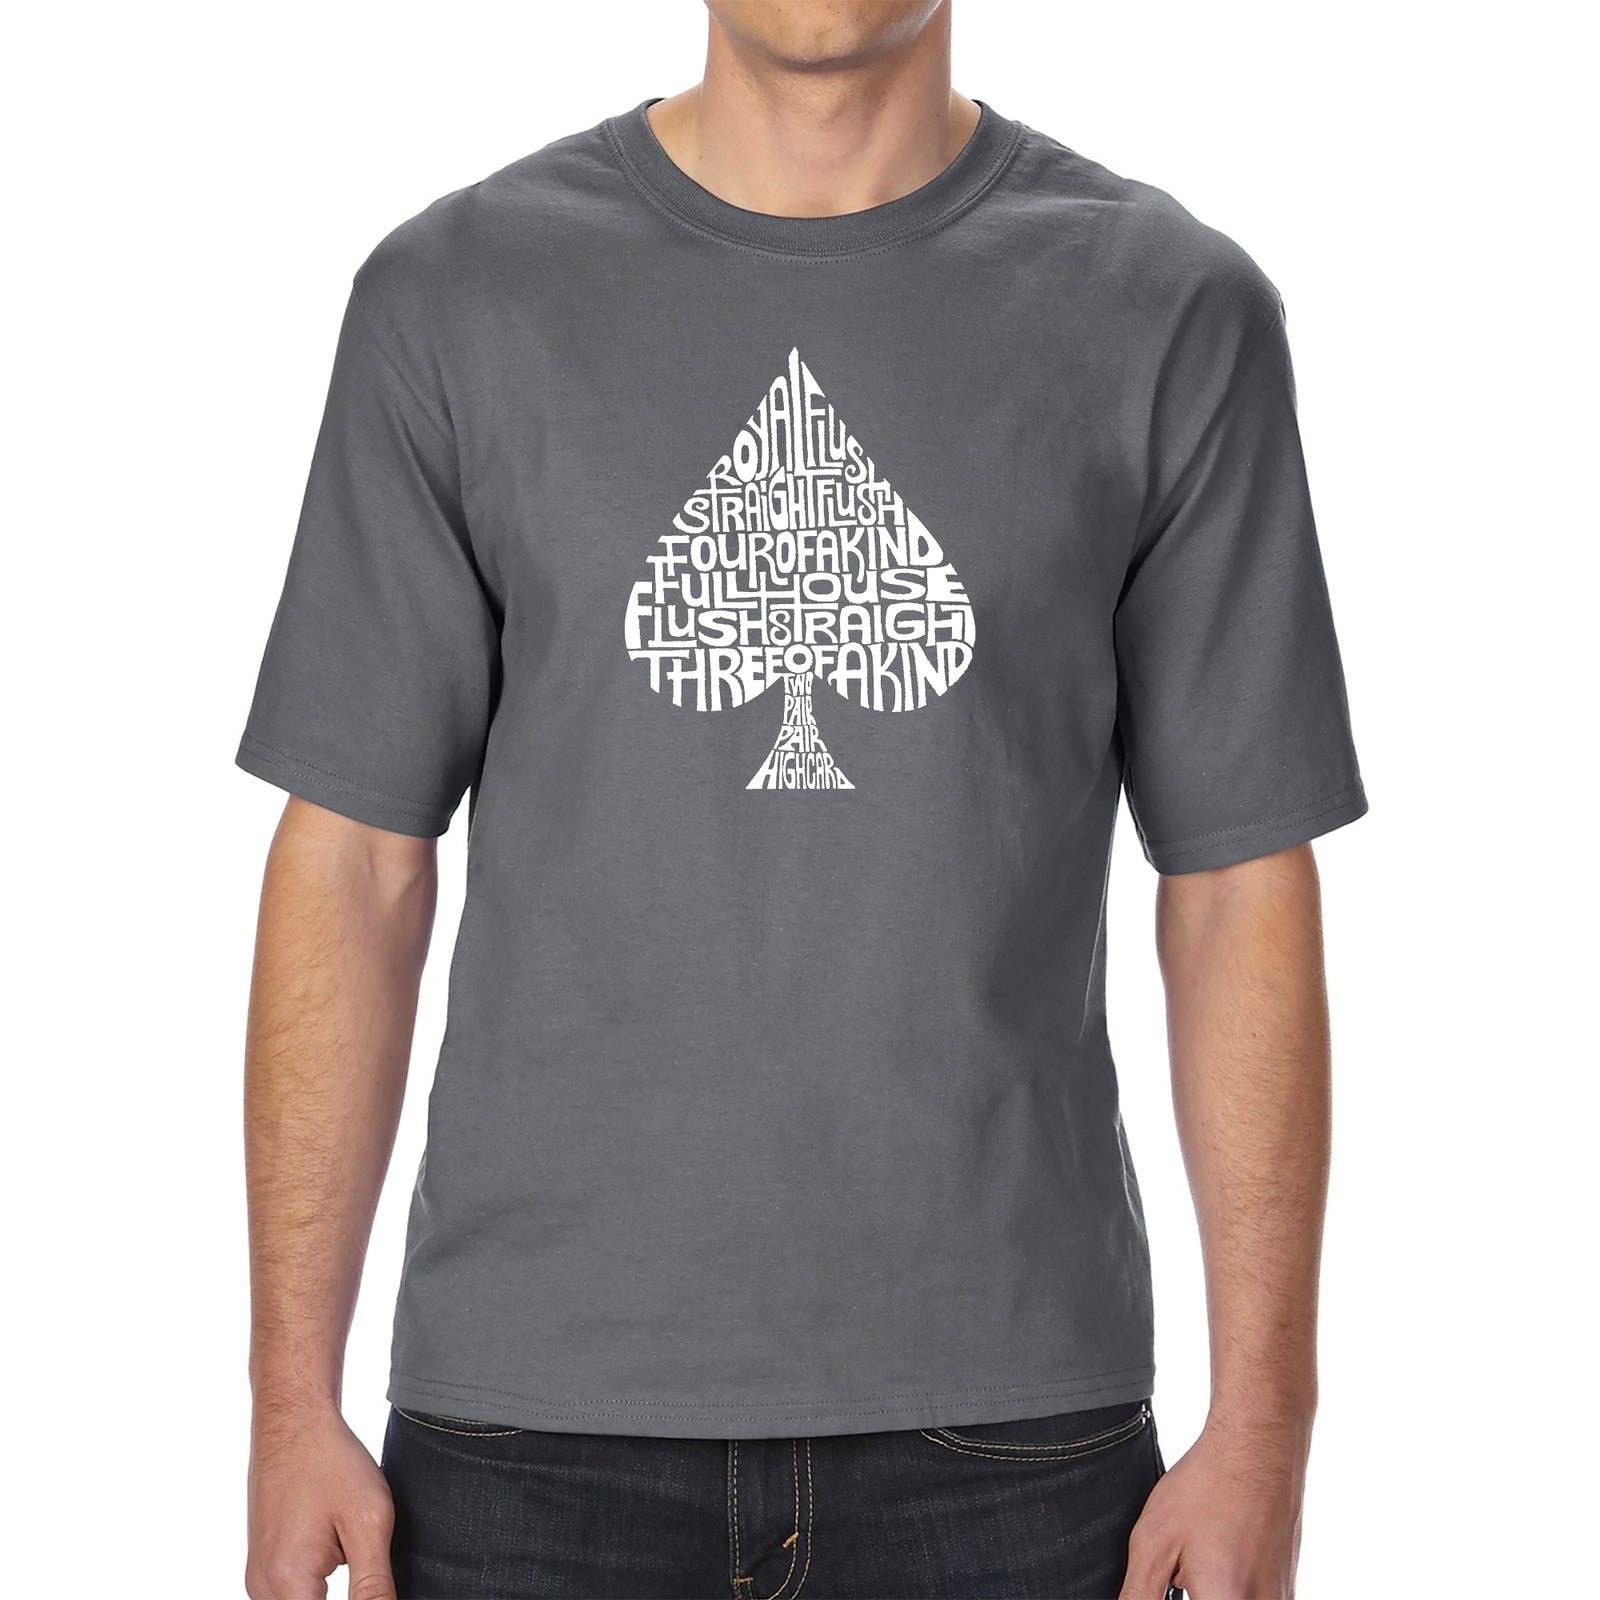 Men's Tall and Long Word Art T-shirt - ORDER OF WINNING POKER HANDS